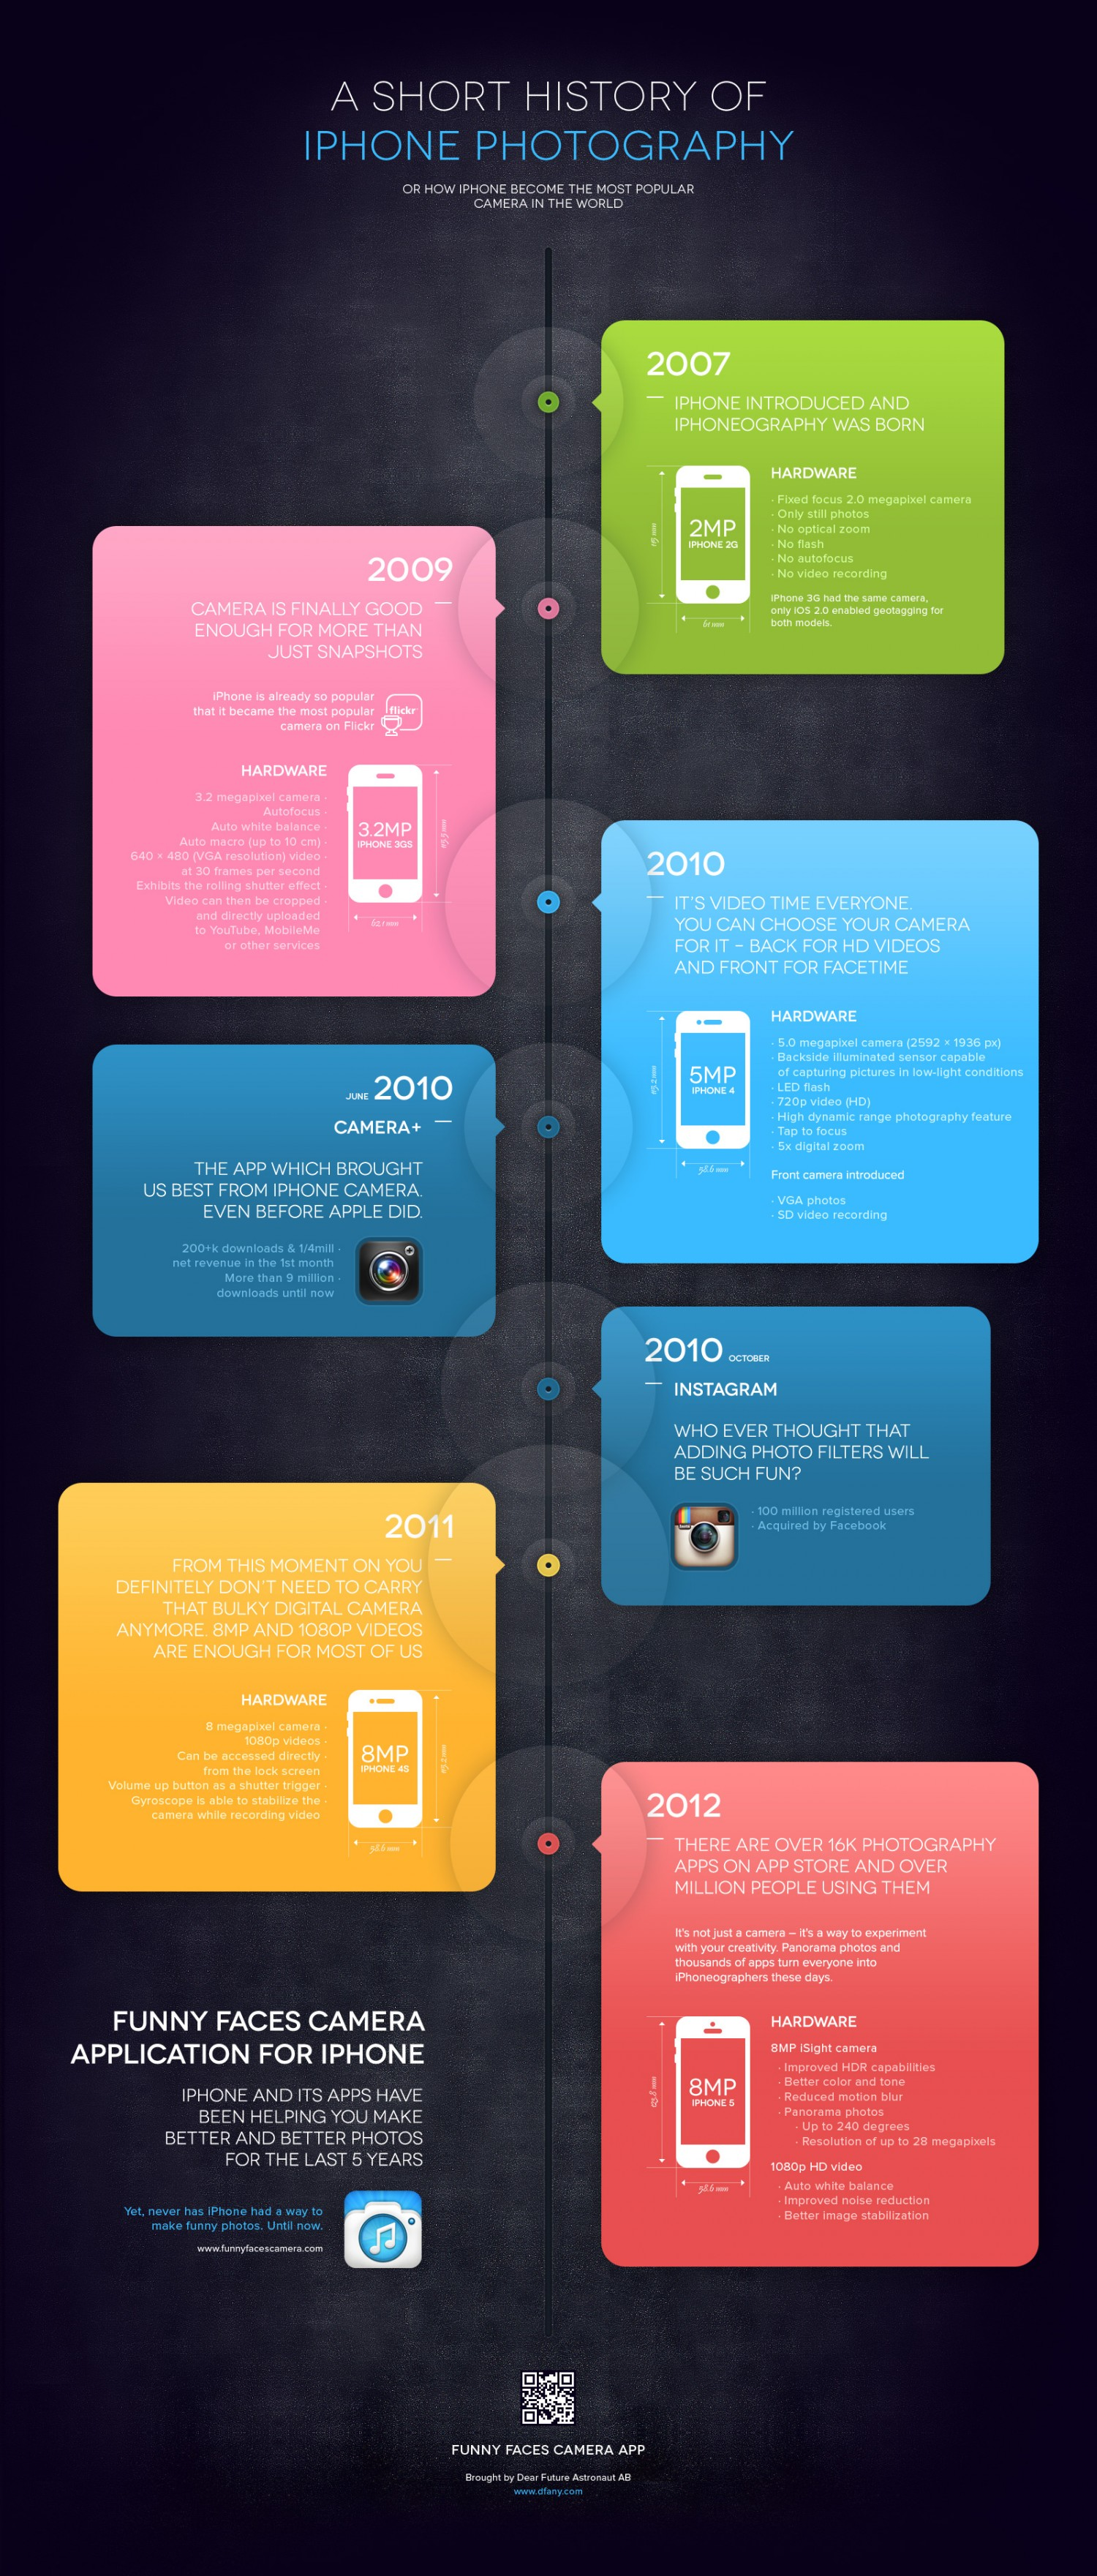 19. A Short history of iPhone photography